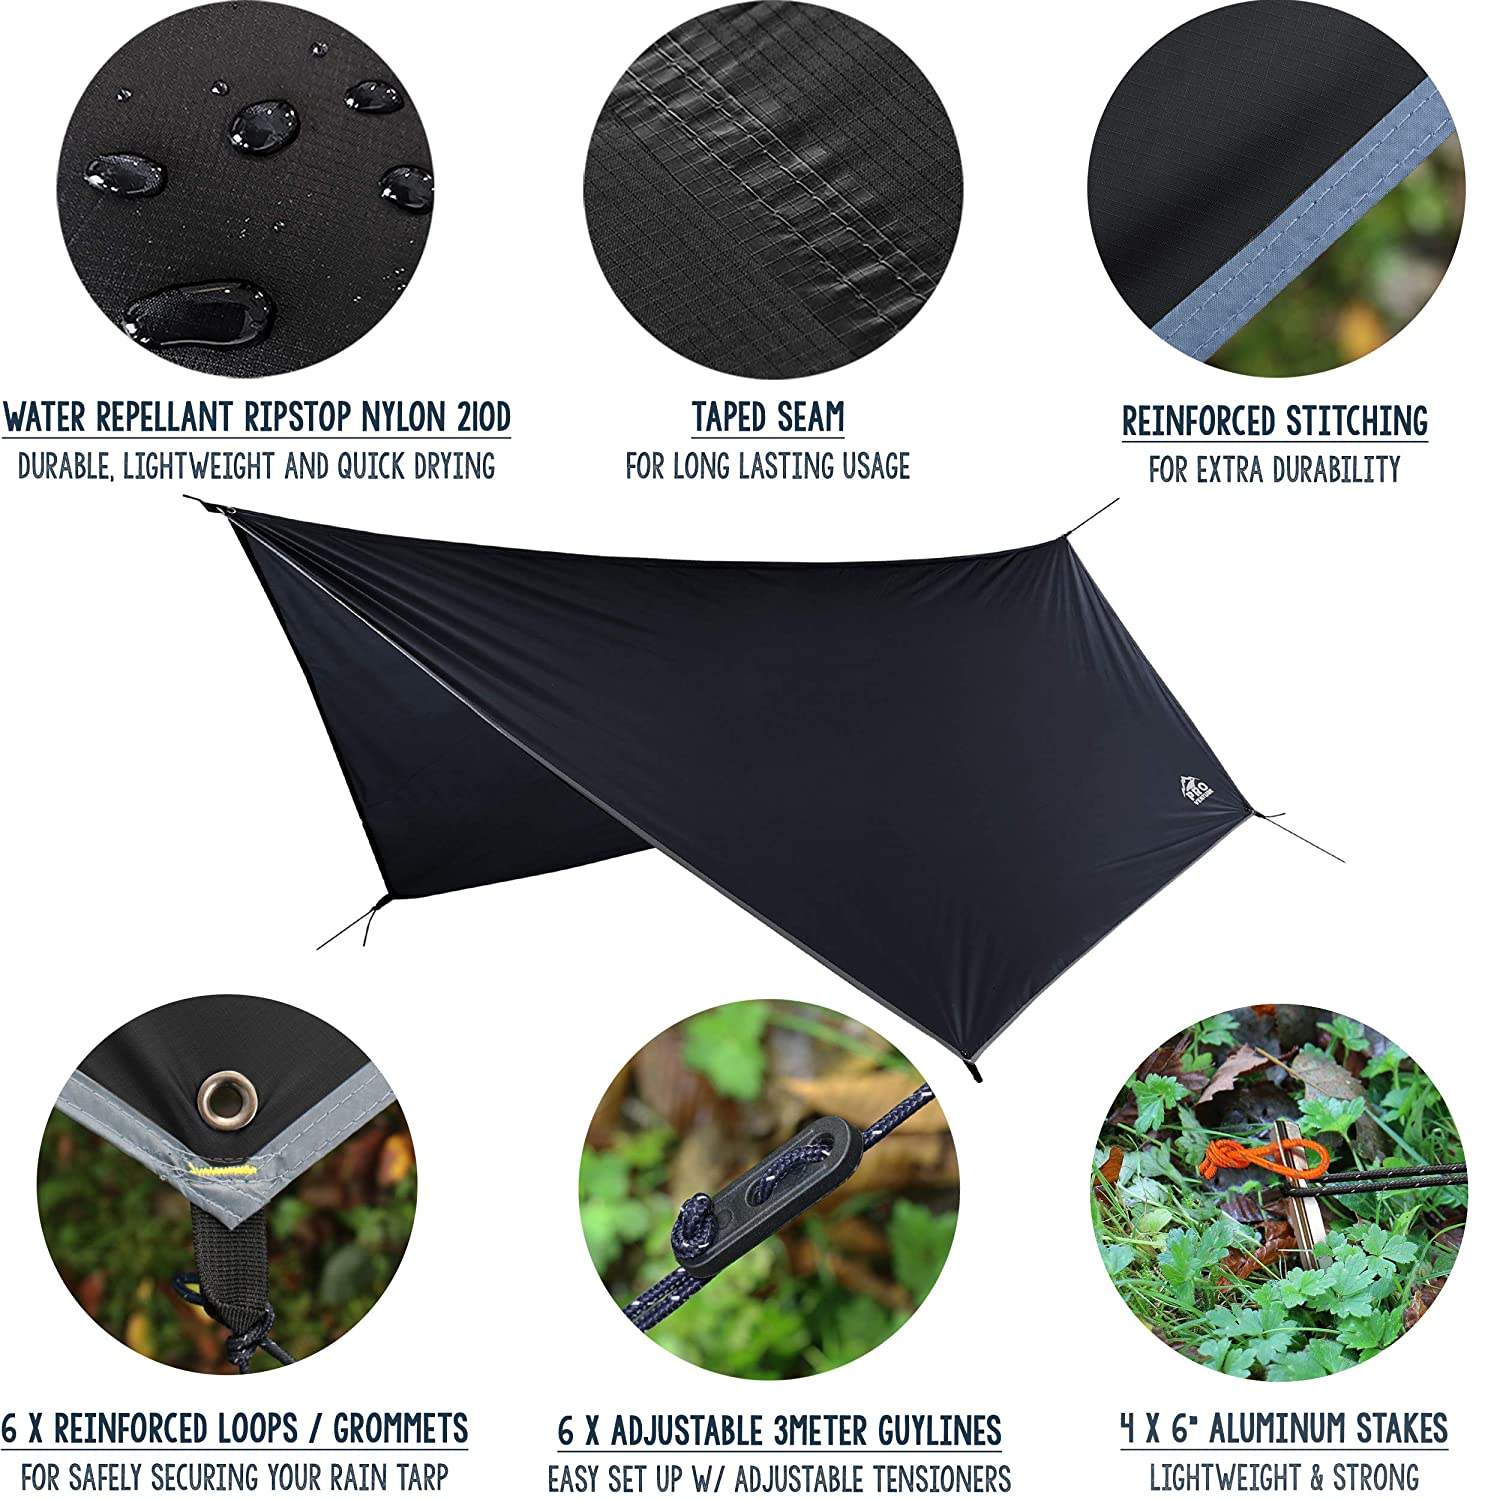 Pro Venture 12 FT Hex Waterproof Hammock RAIN Fly - Portable Large Rain Tarp - Premium Lightweight Ripstop Nylon - Fast Set Up - Hammock Camping Essential! 12FT x 9FT HEX Shape